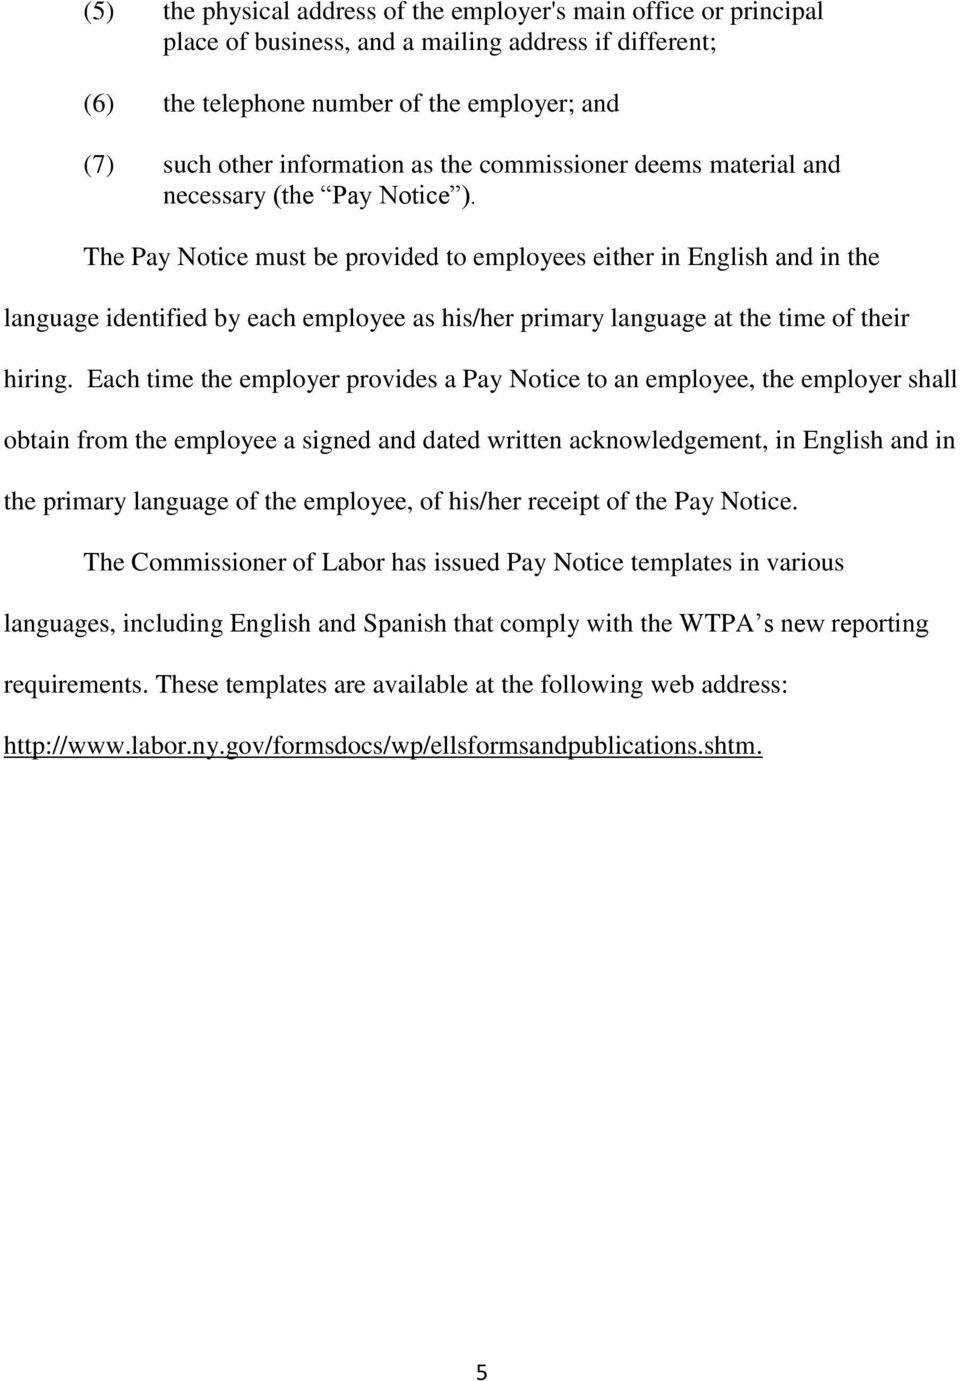 The Pay Notice must be provided to employees either in English and in the language identified by each employee as his/her primary language at the time of their hiring.